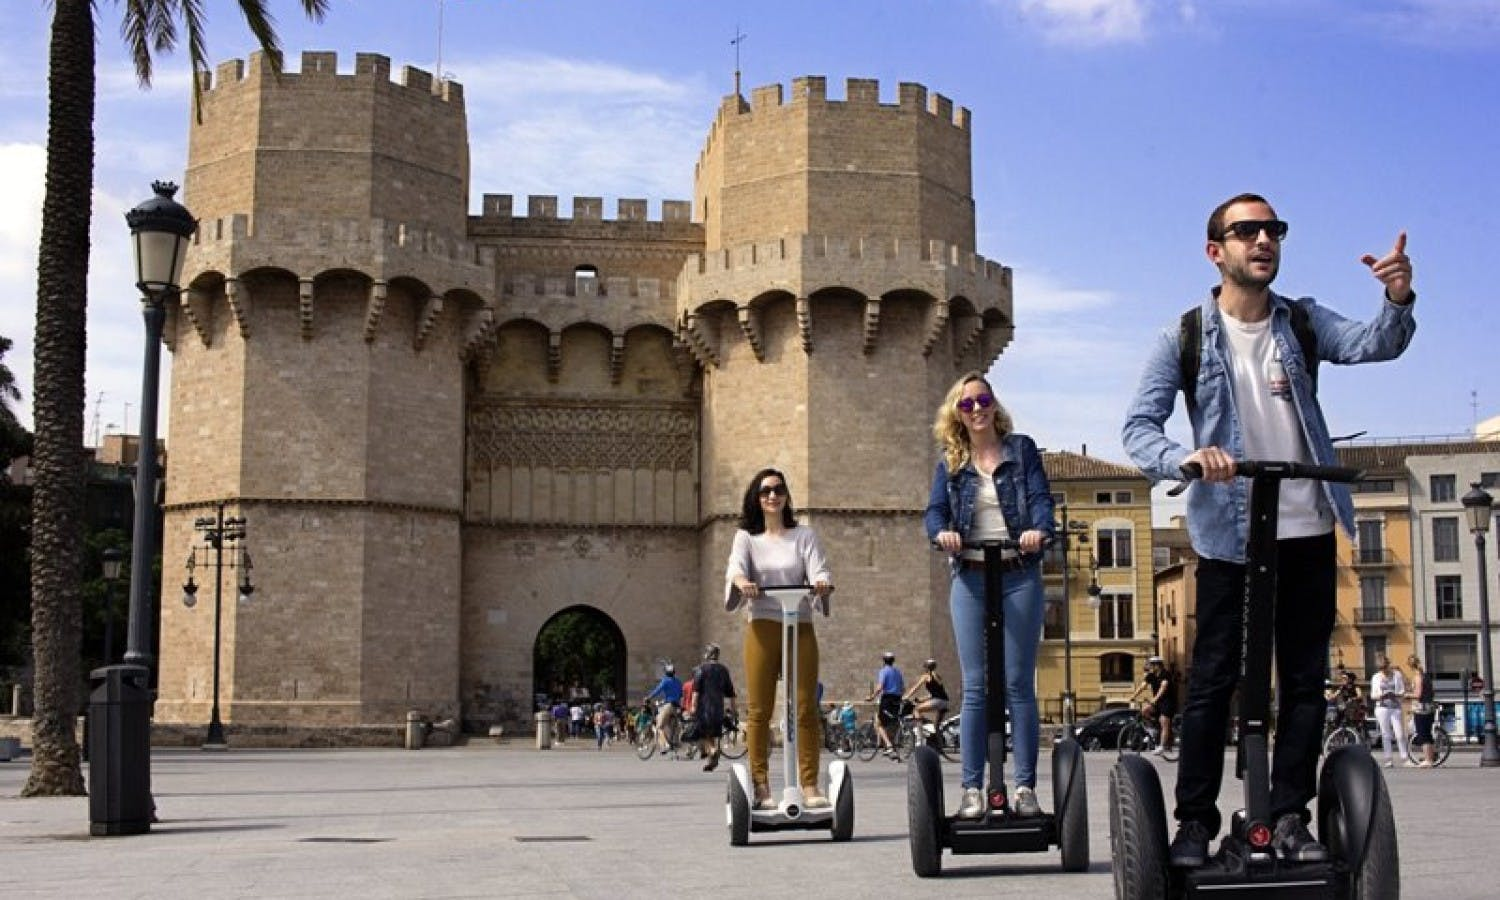 Valencia Arts and Sciences segway tour